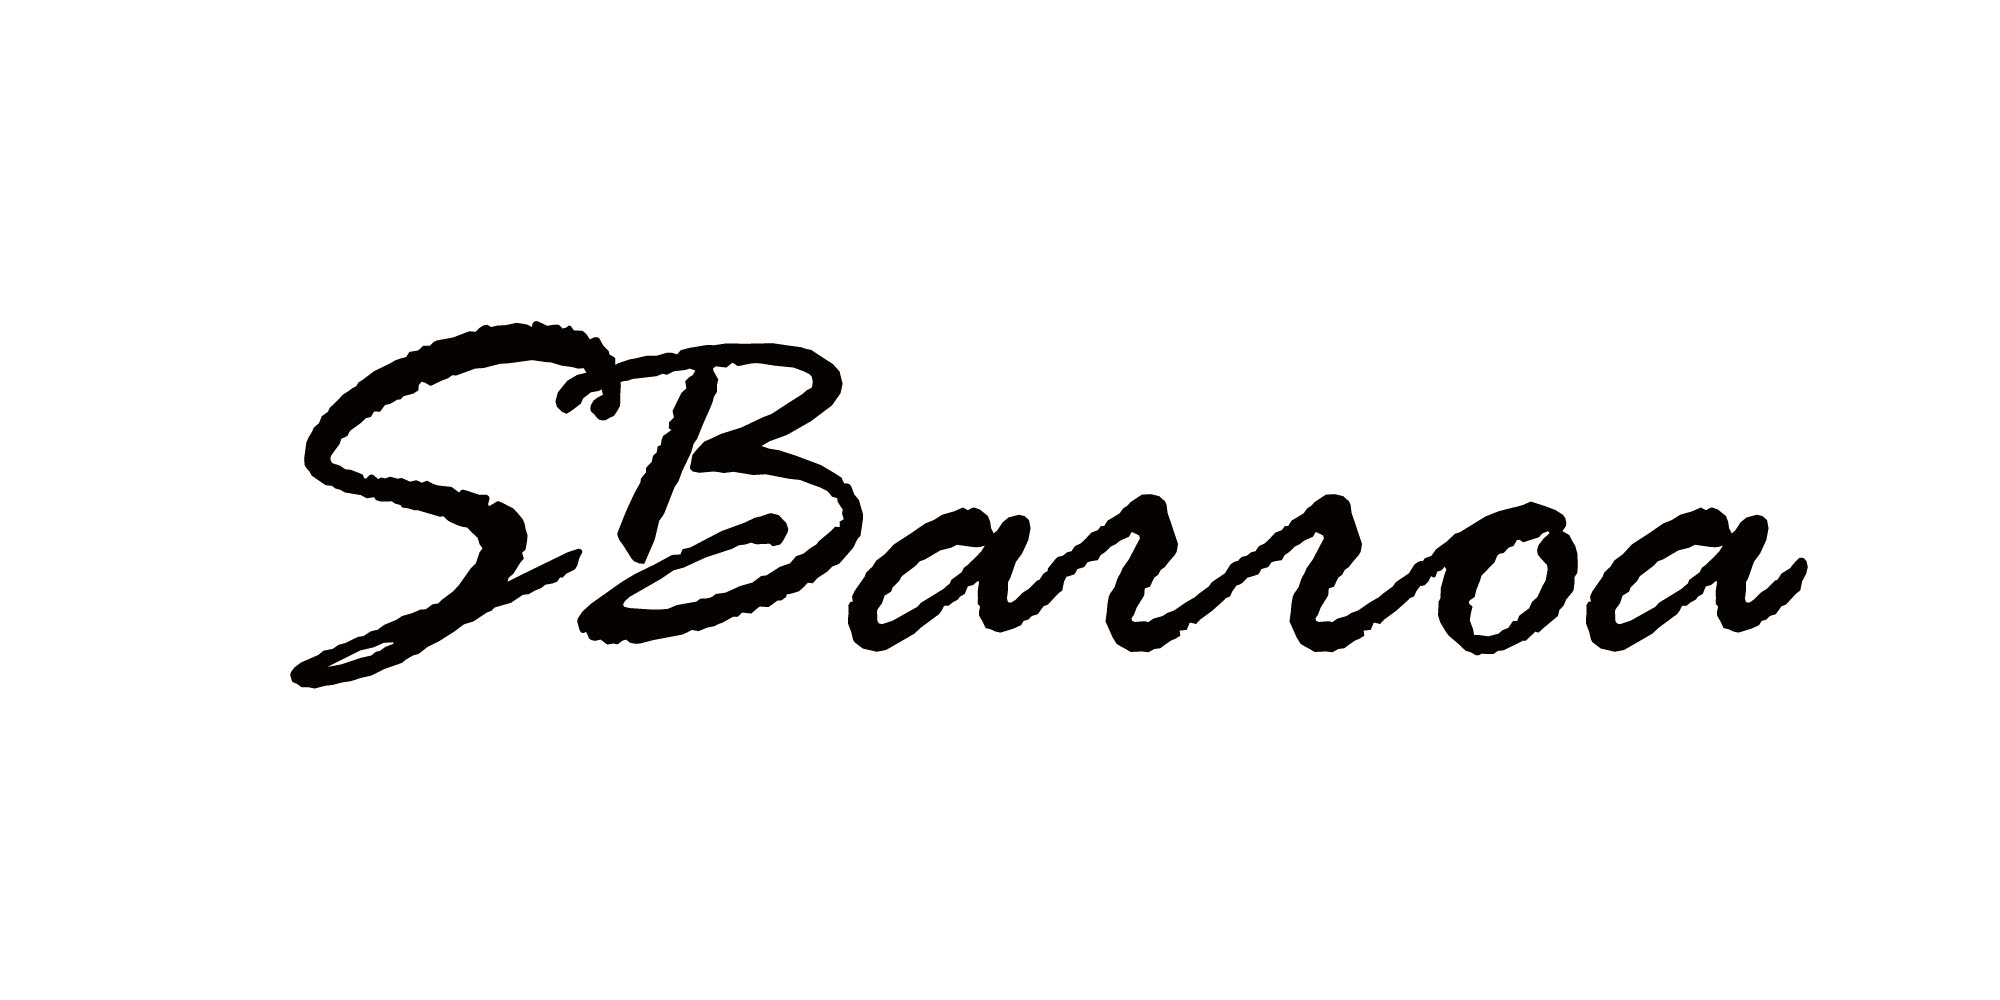 Solomon Barroa Signature